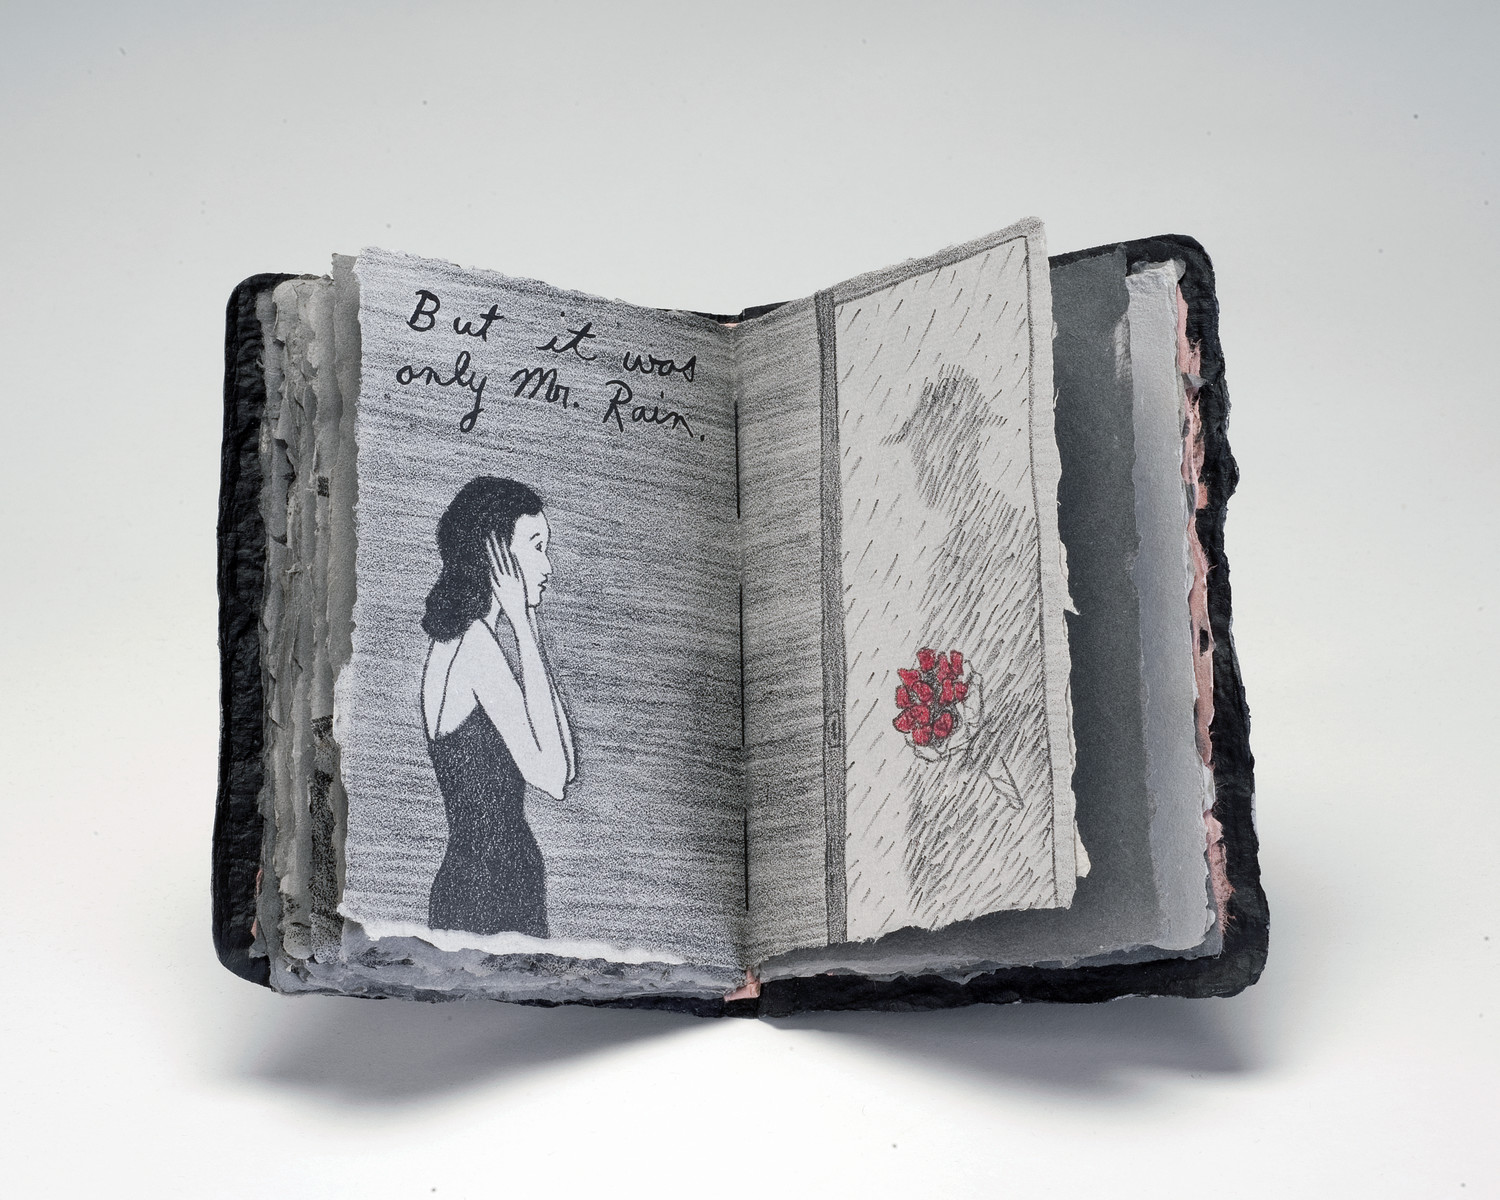 An open book shows a young, light-skinned woman with black hair reacts to a shadowy male figure in her doorway. The figure, comprised of raindrops, offers her a bouquet of bright red roses. Above the woman, the words